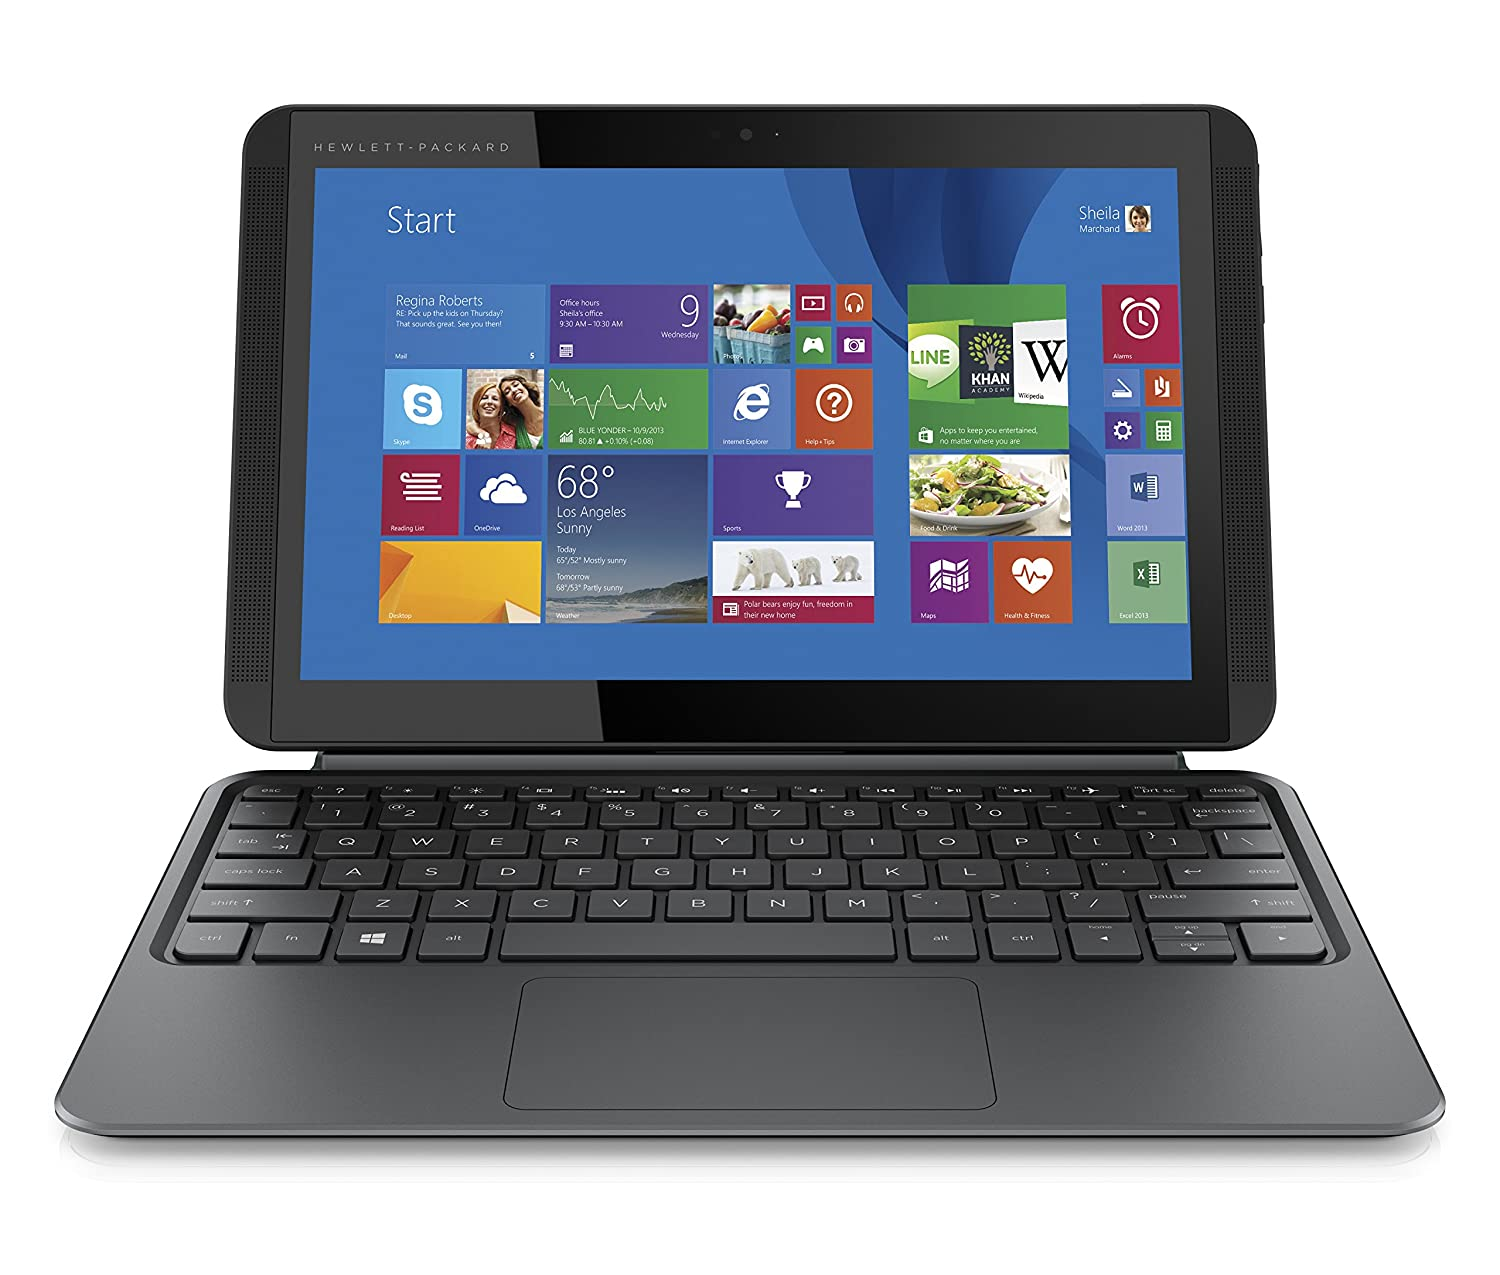 HP-Pavilion-X2-10-1-Inch-Detachable-2-in-1-Touchscreen-Laptop-64GB-Includes-Office-365-Personal-for-1-year-